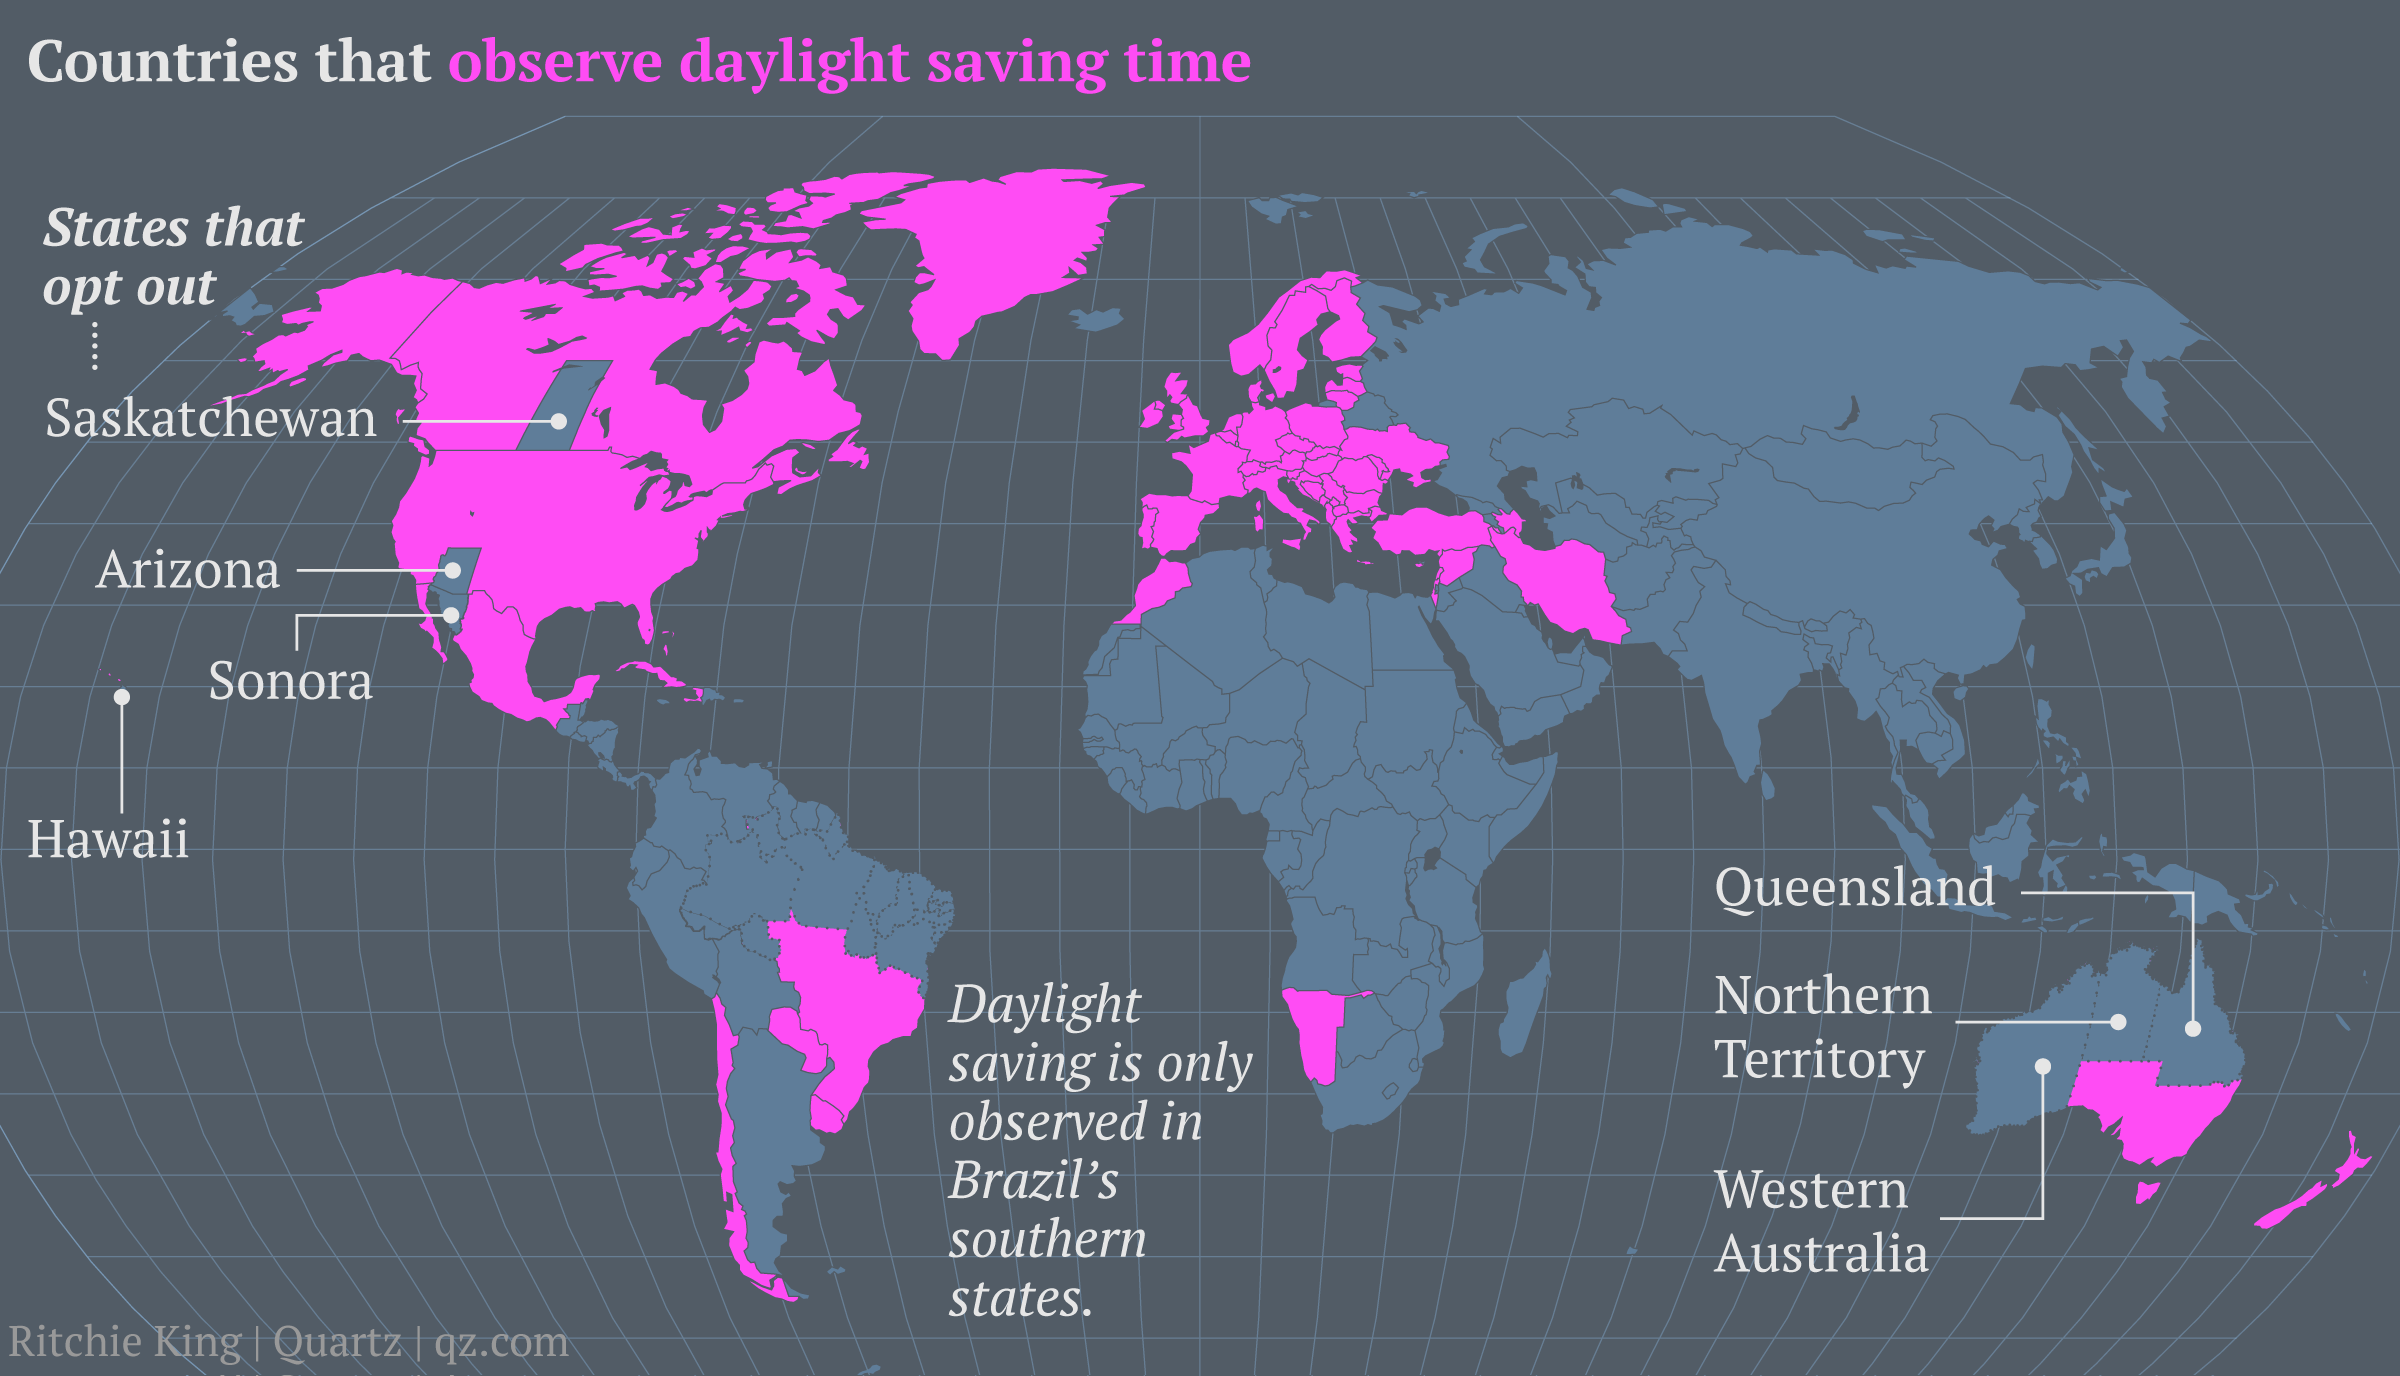 Daylight Saving Time Dst 2016 The Us Needs To Retire Daylight Savings And Just Have Two Time Zones One Hour Apart Daylight Savings Time Daylight Savings Time Zones